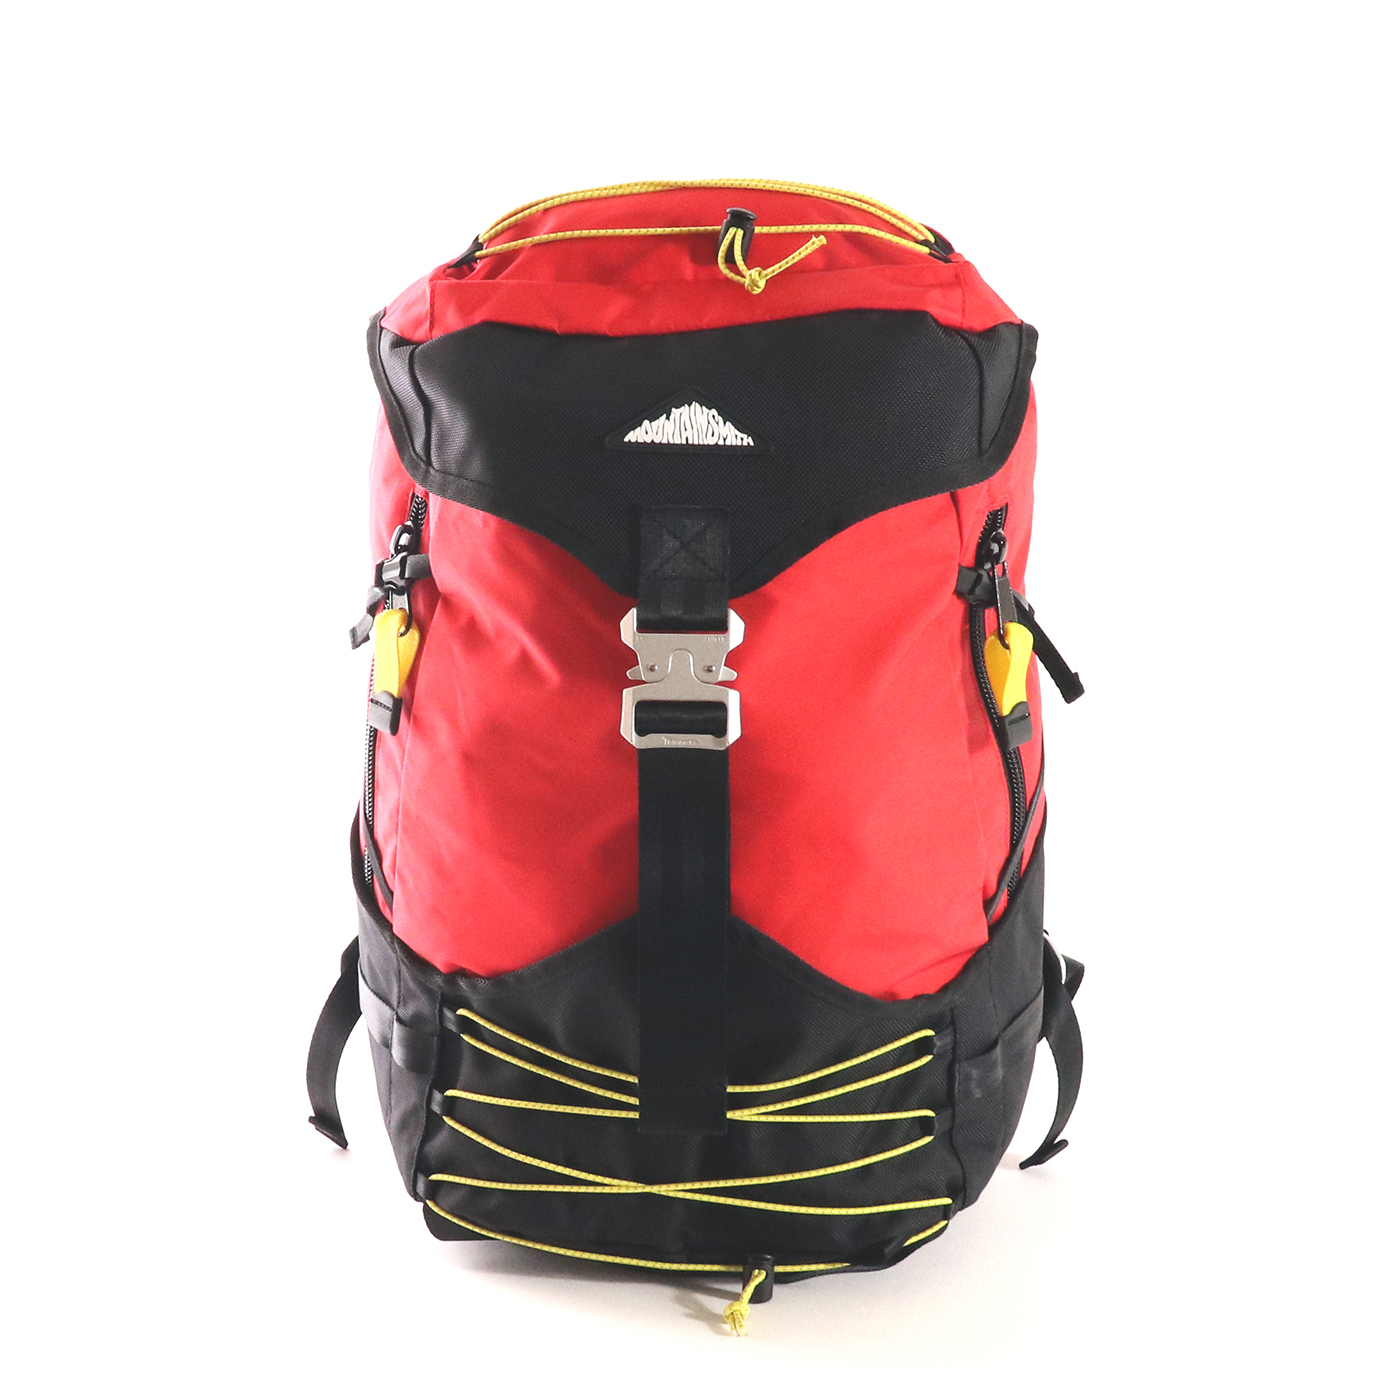 product: LEYDEN / color: RED 1